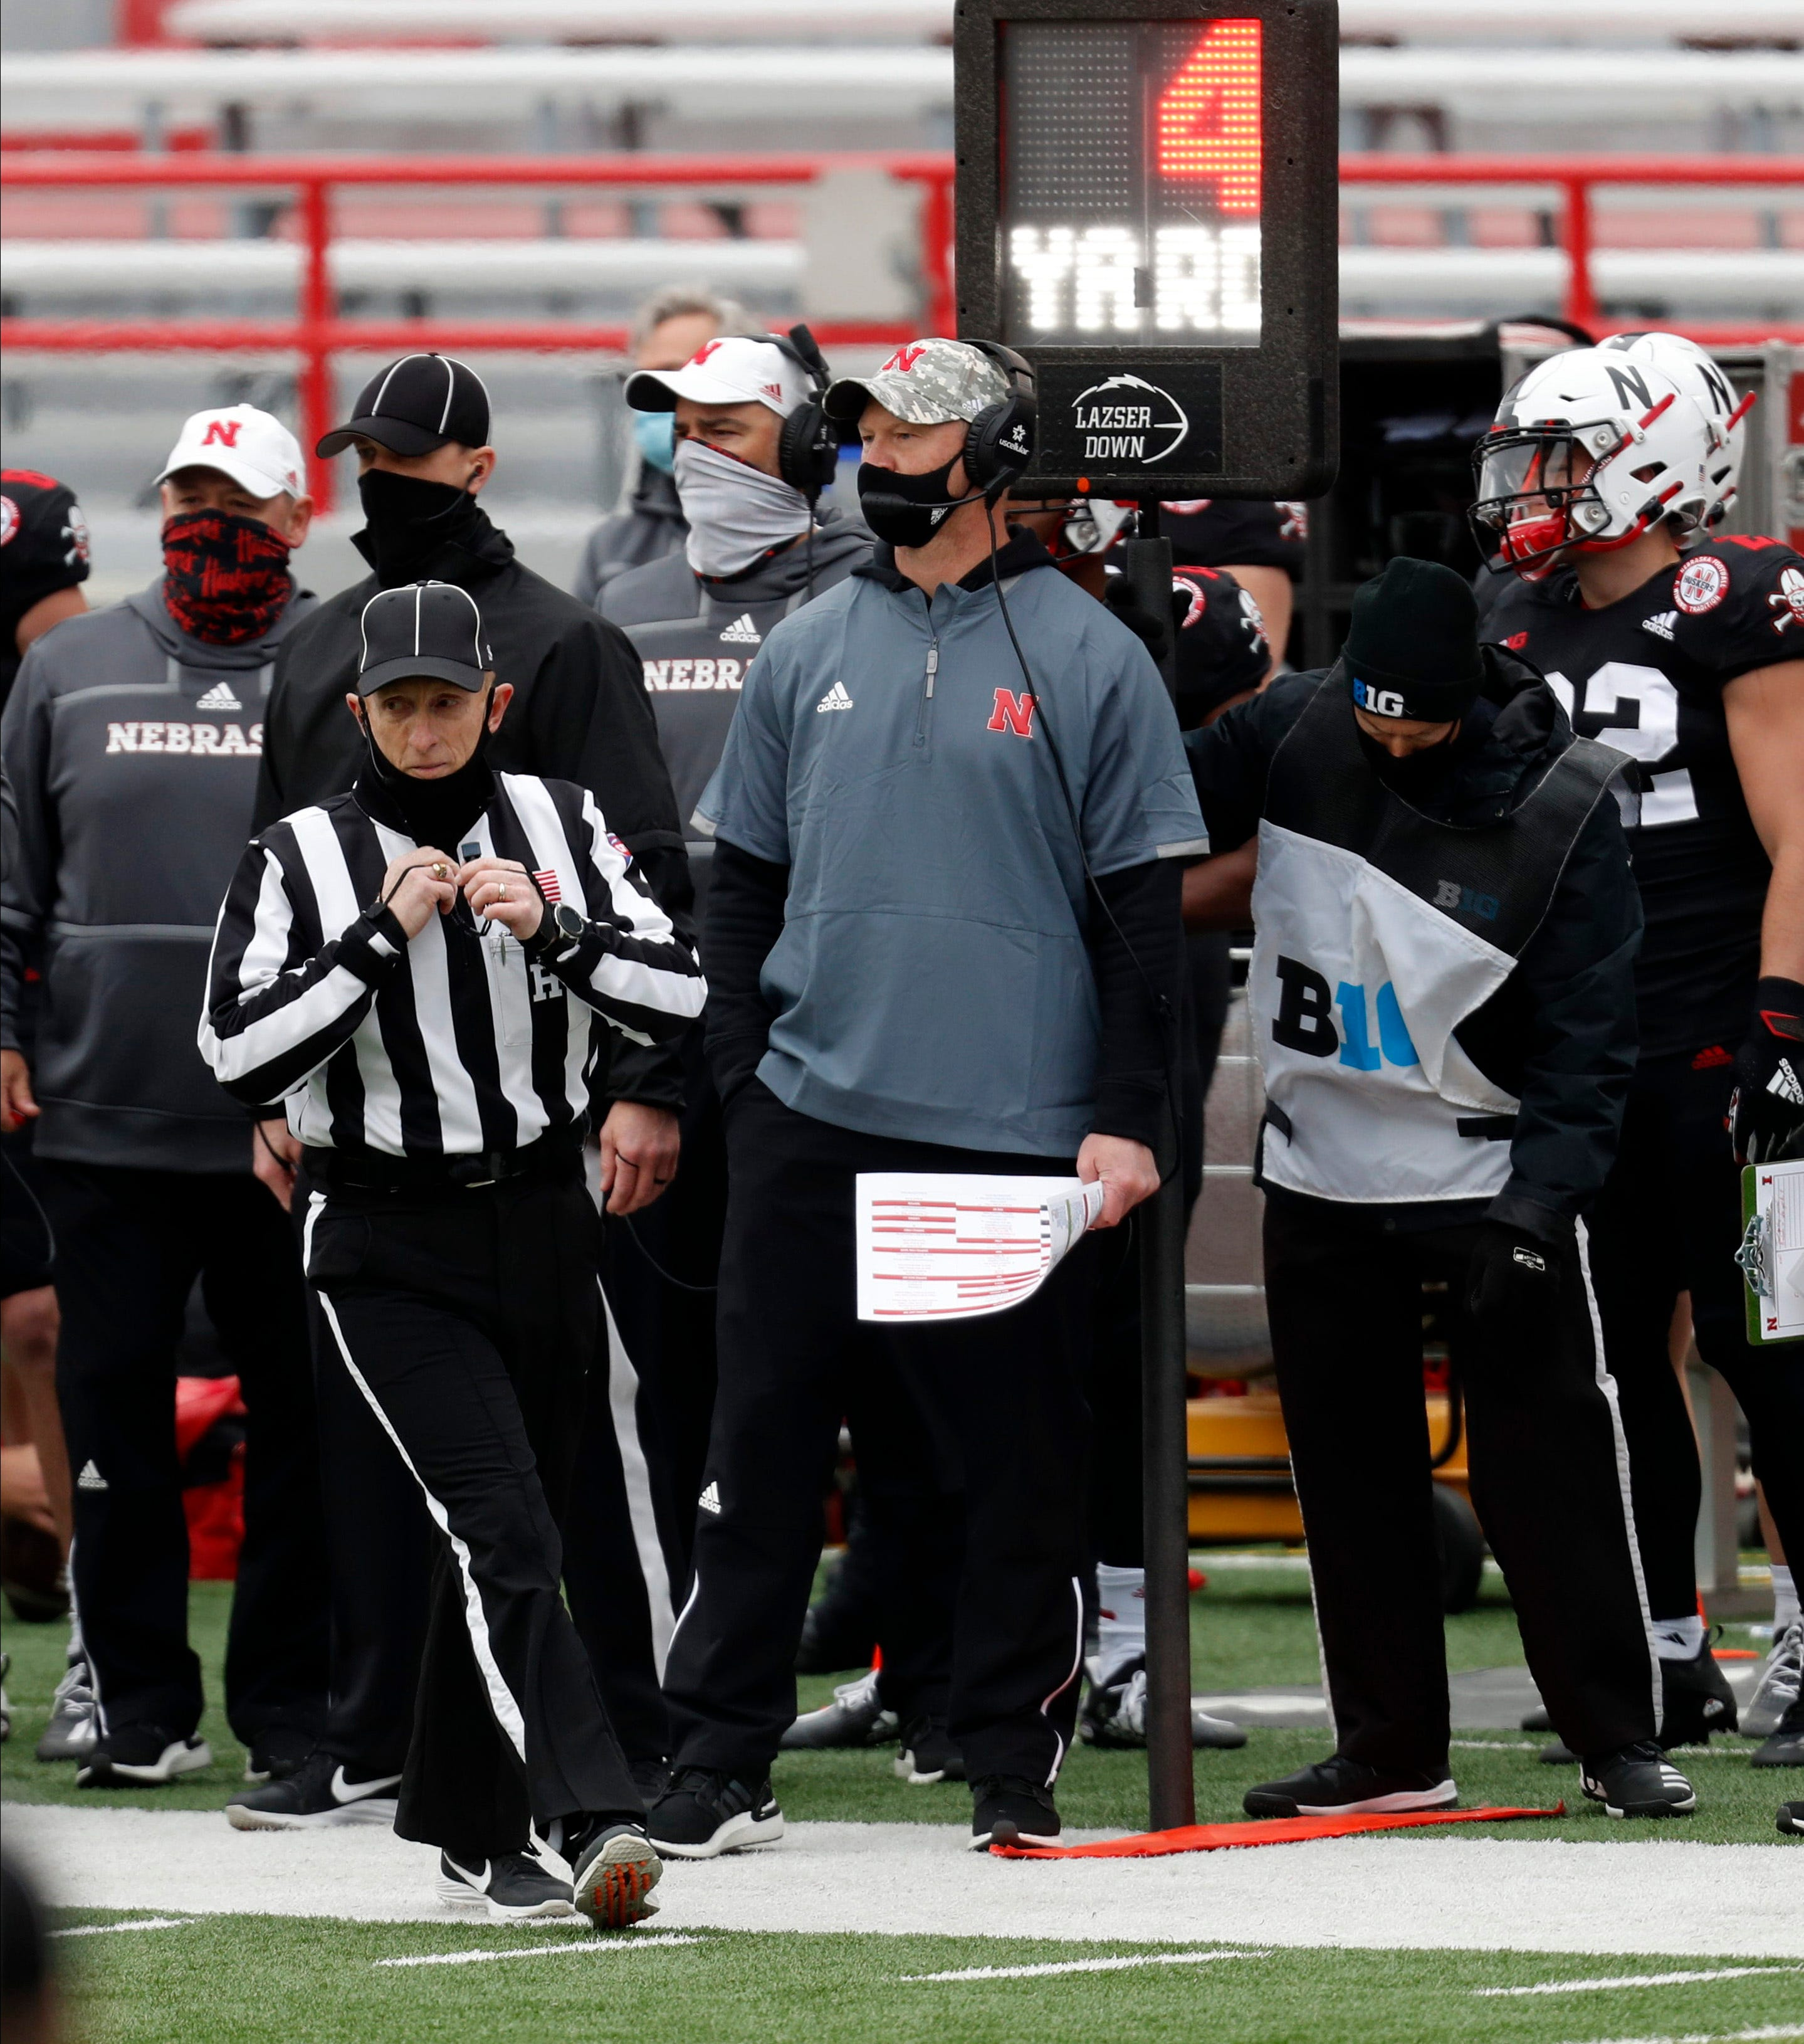 Opinion: Nebraska getting trolled by Illinois after another loss adds to Scott Frost s misery